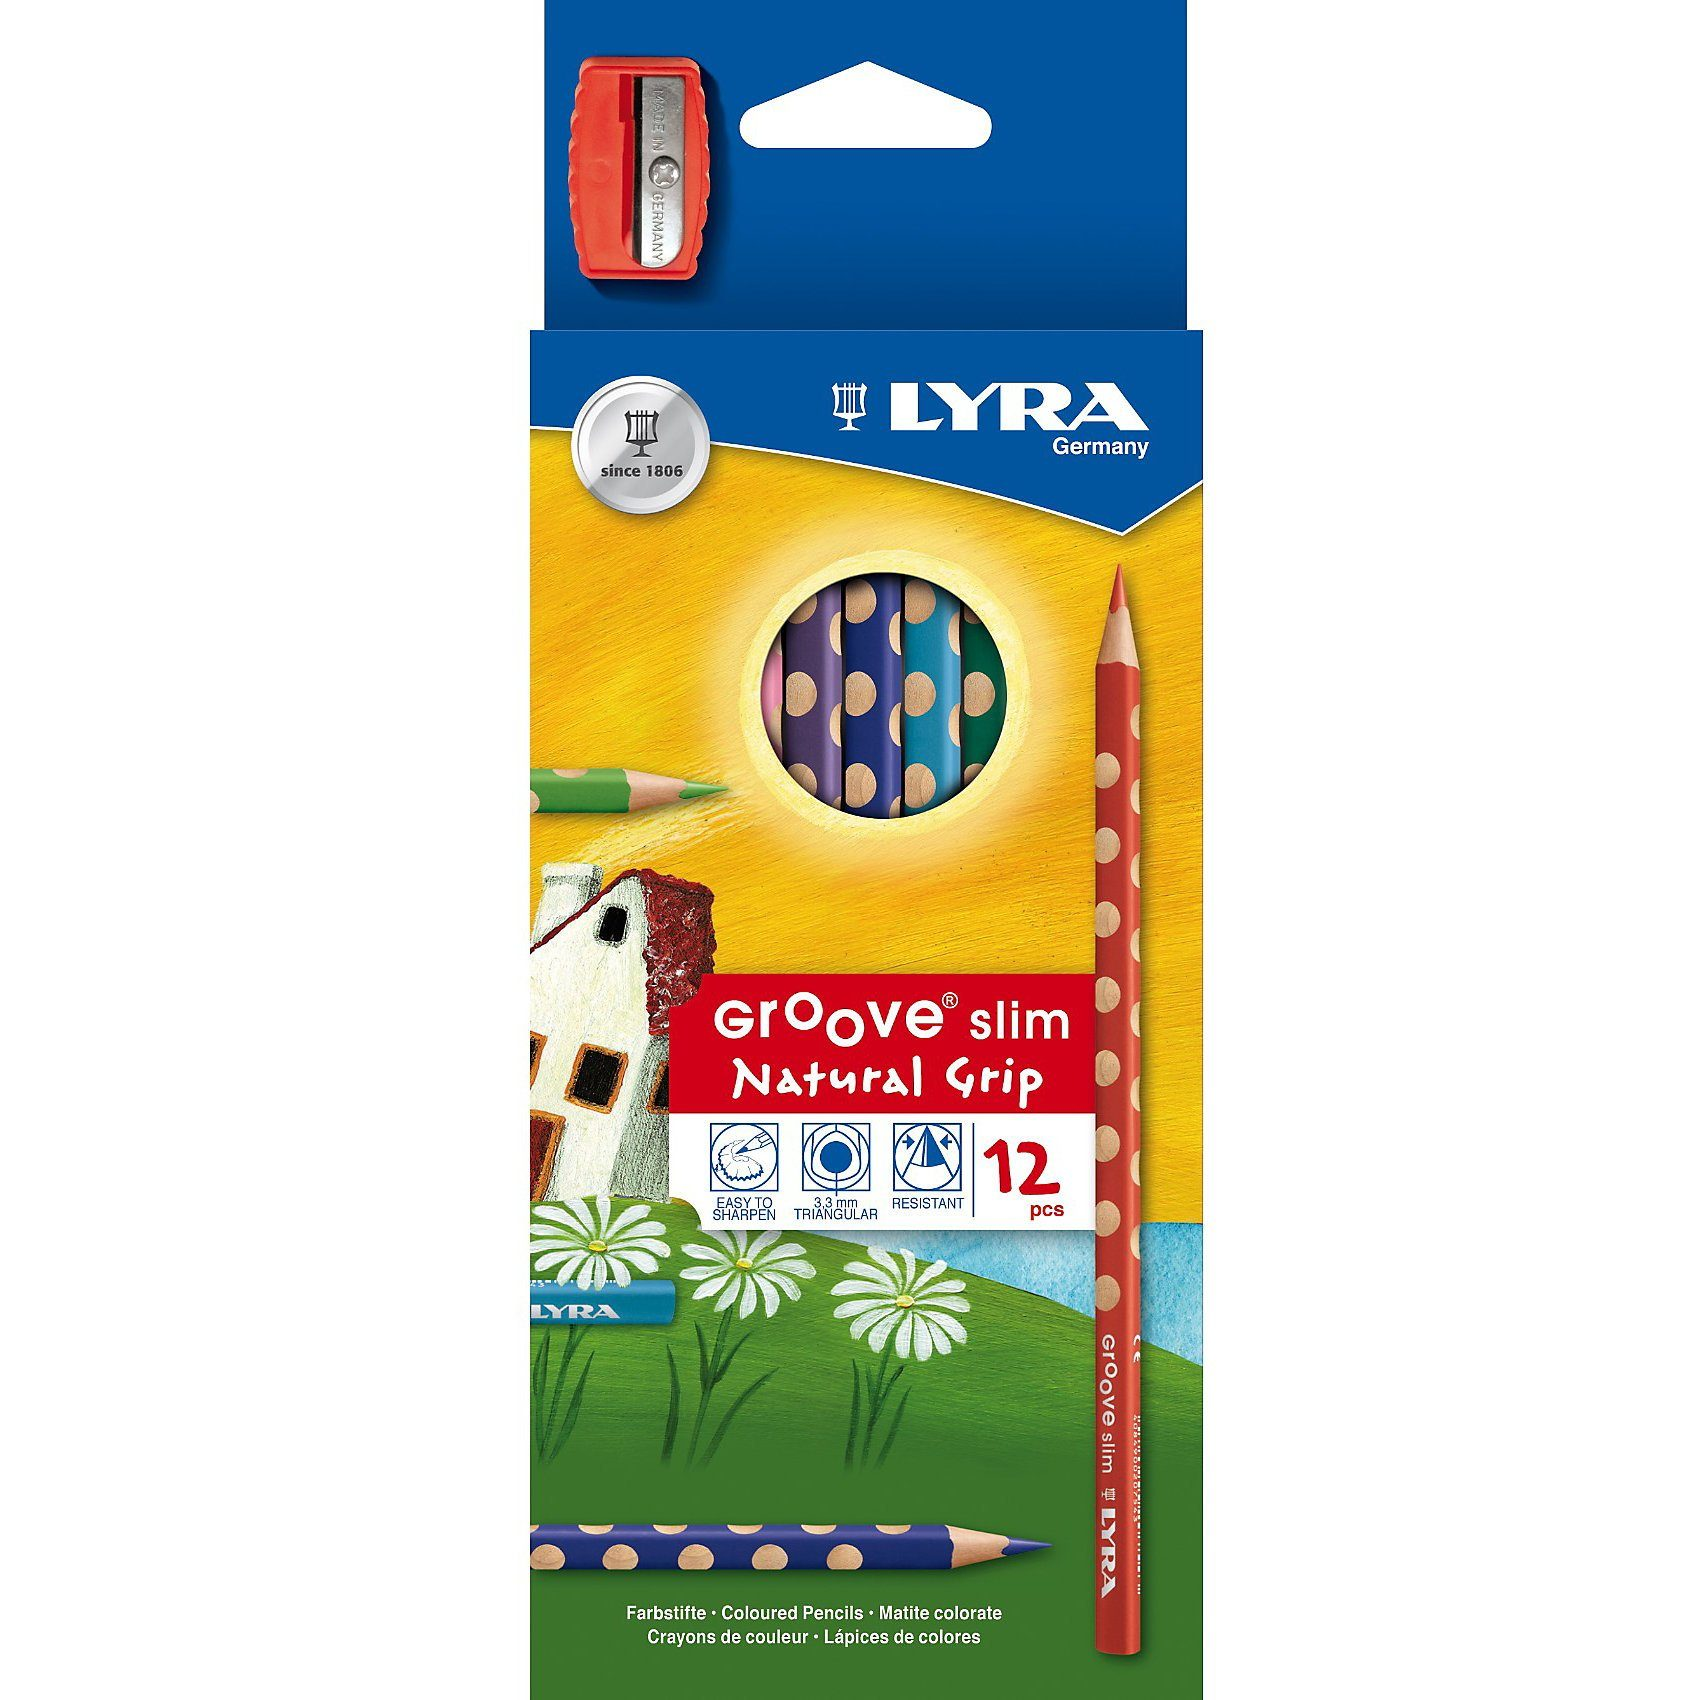 LYRA GROOVE slim Natural Grip Farbstifte, 12 Farben, inkl. Anspit